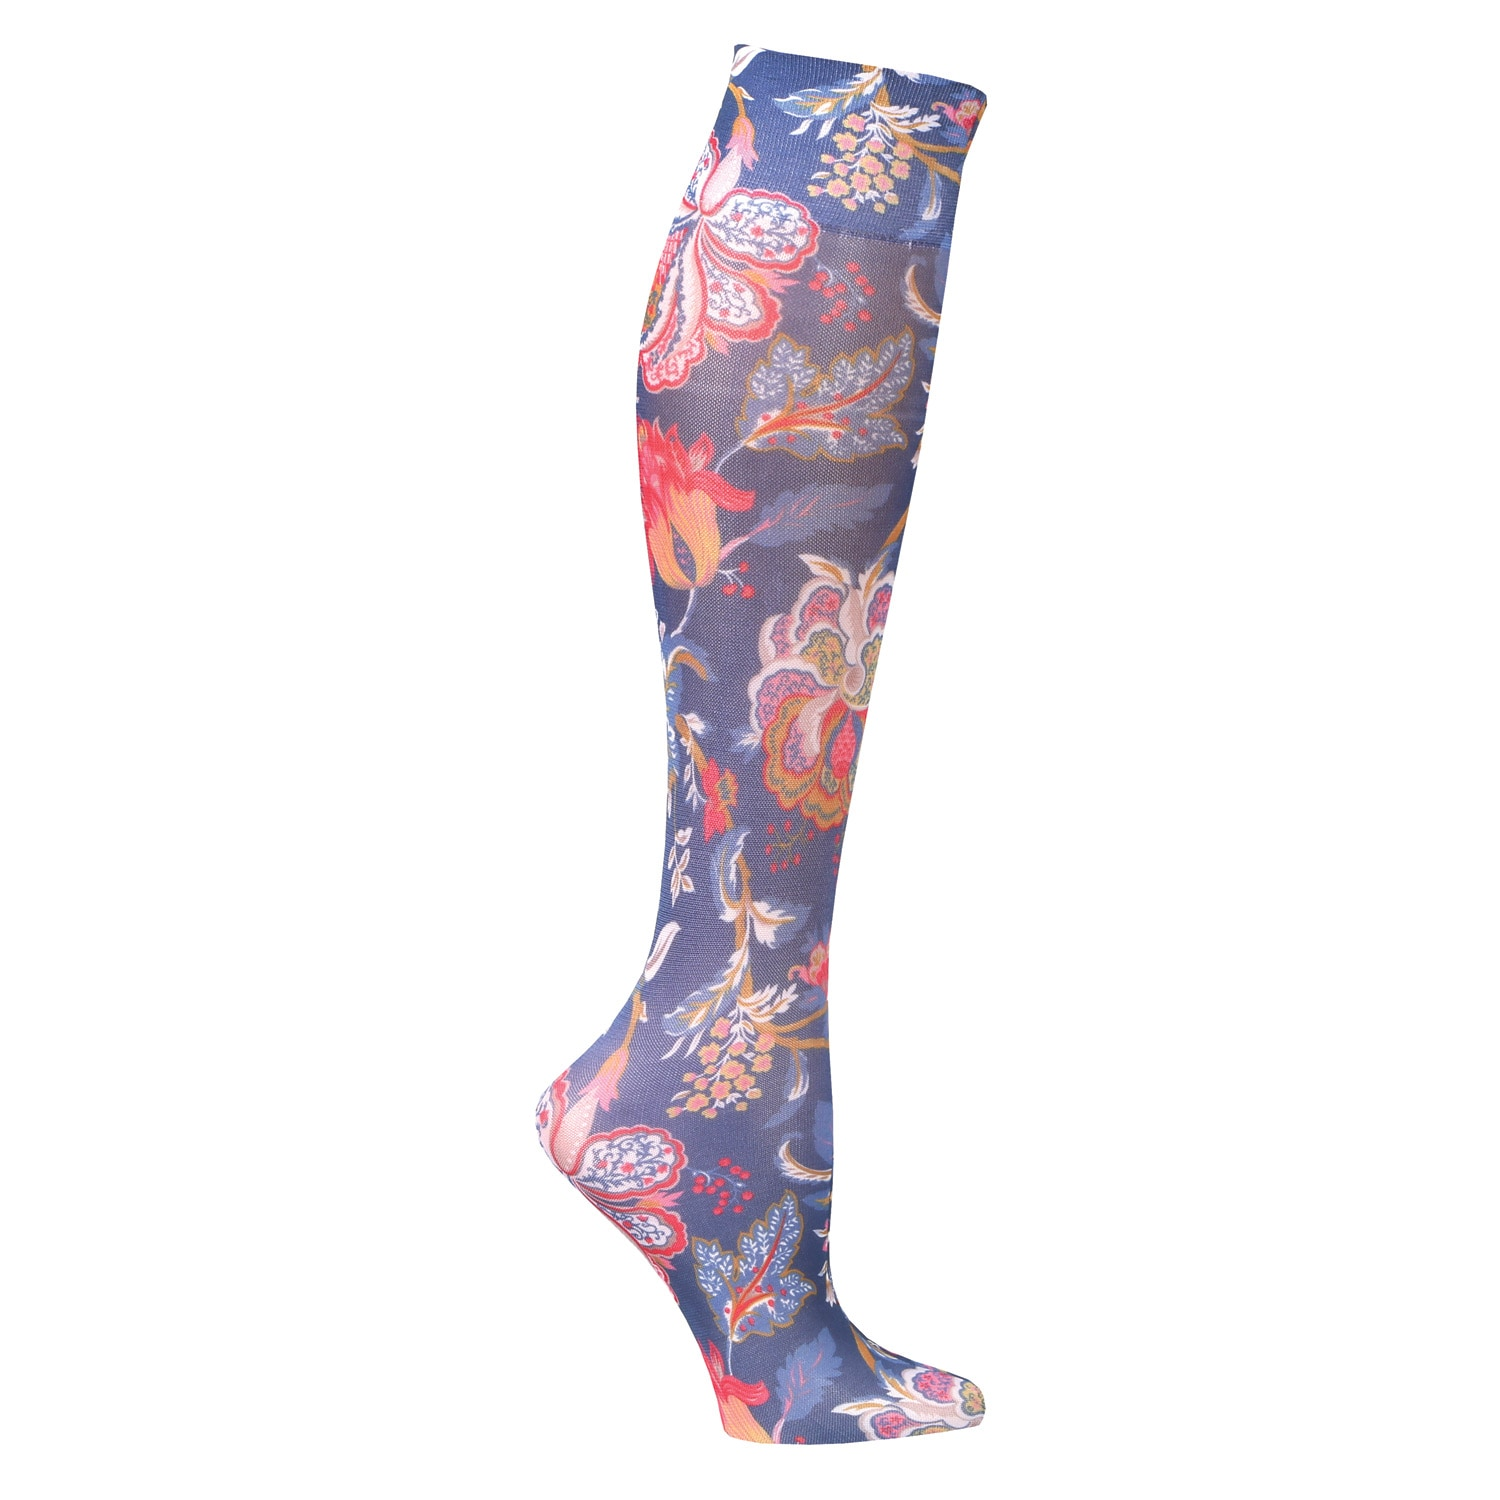 72ac80c2a5c Celeste Stein Moderate Compression Knee High Stockings Wide Calf-Navy  Tapestry